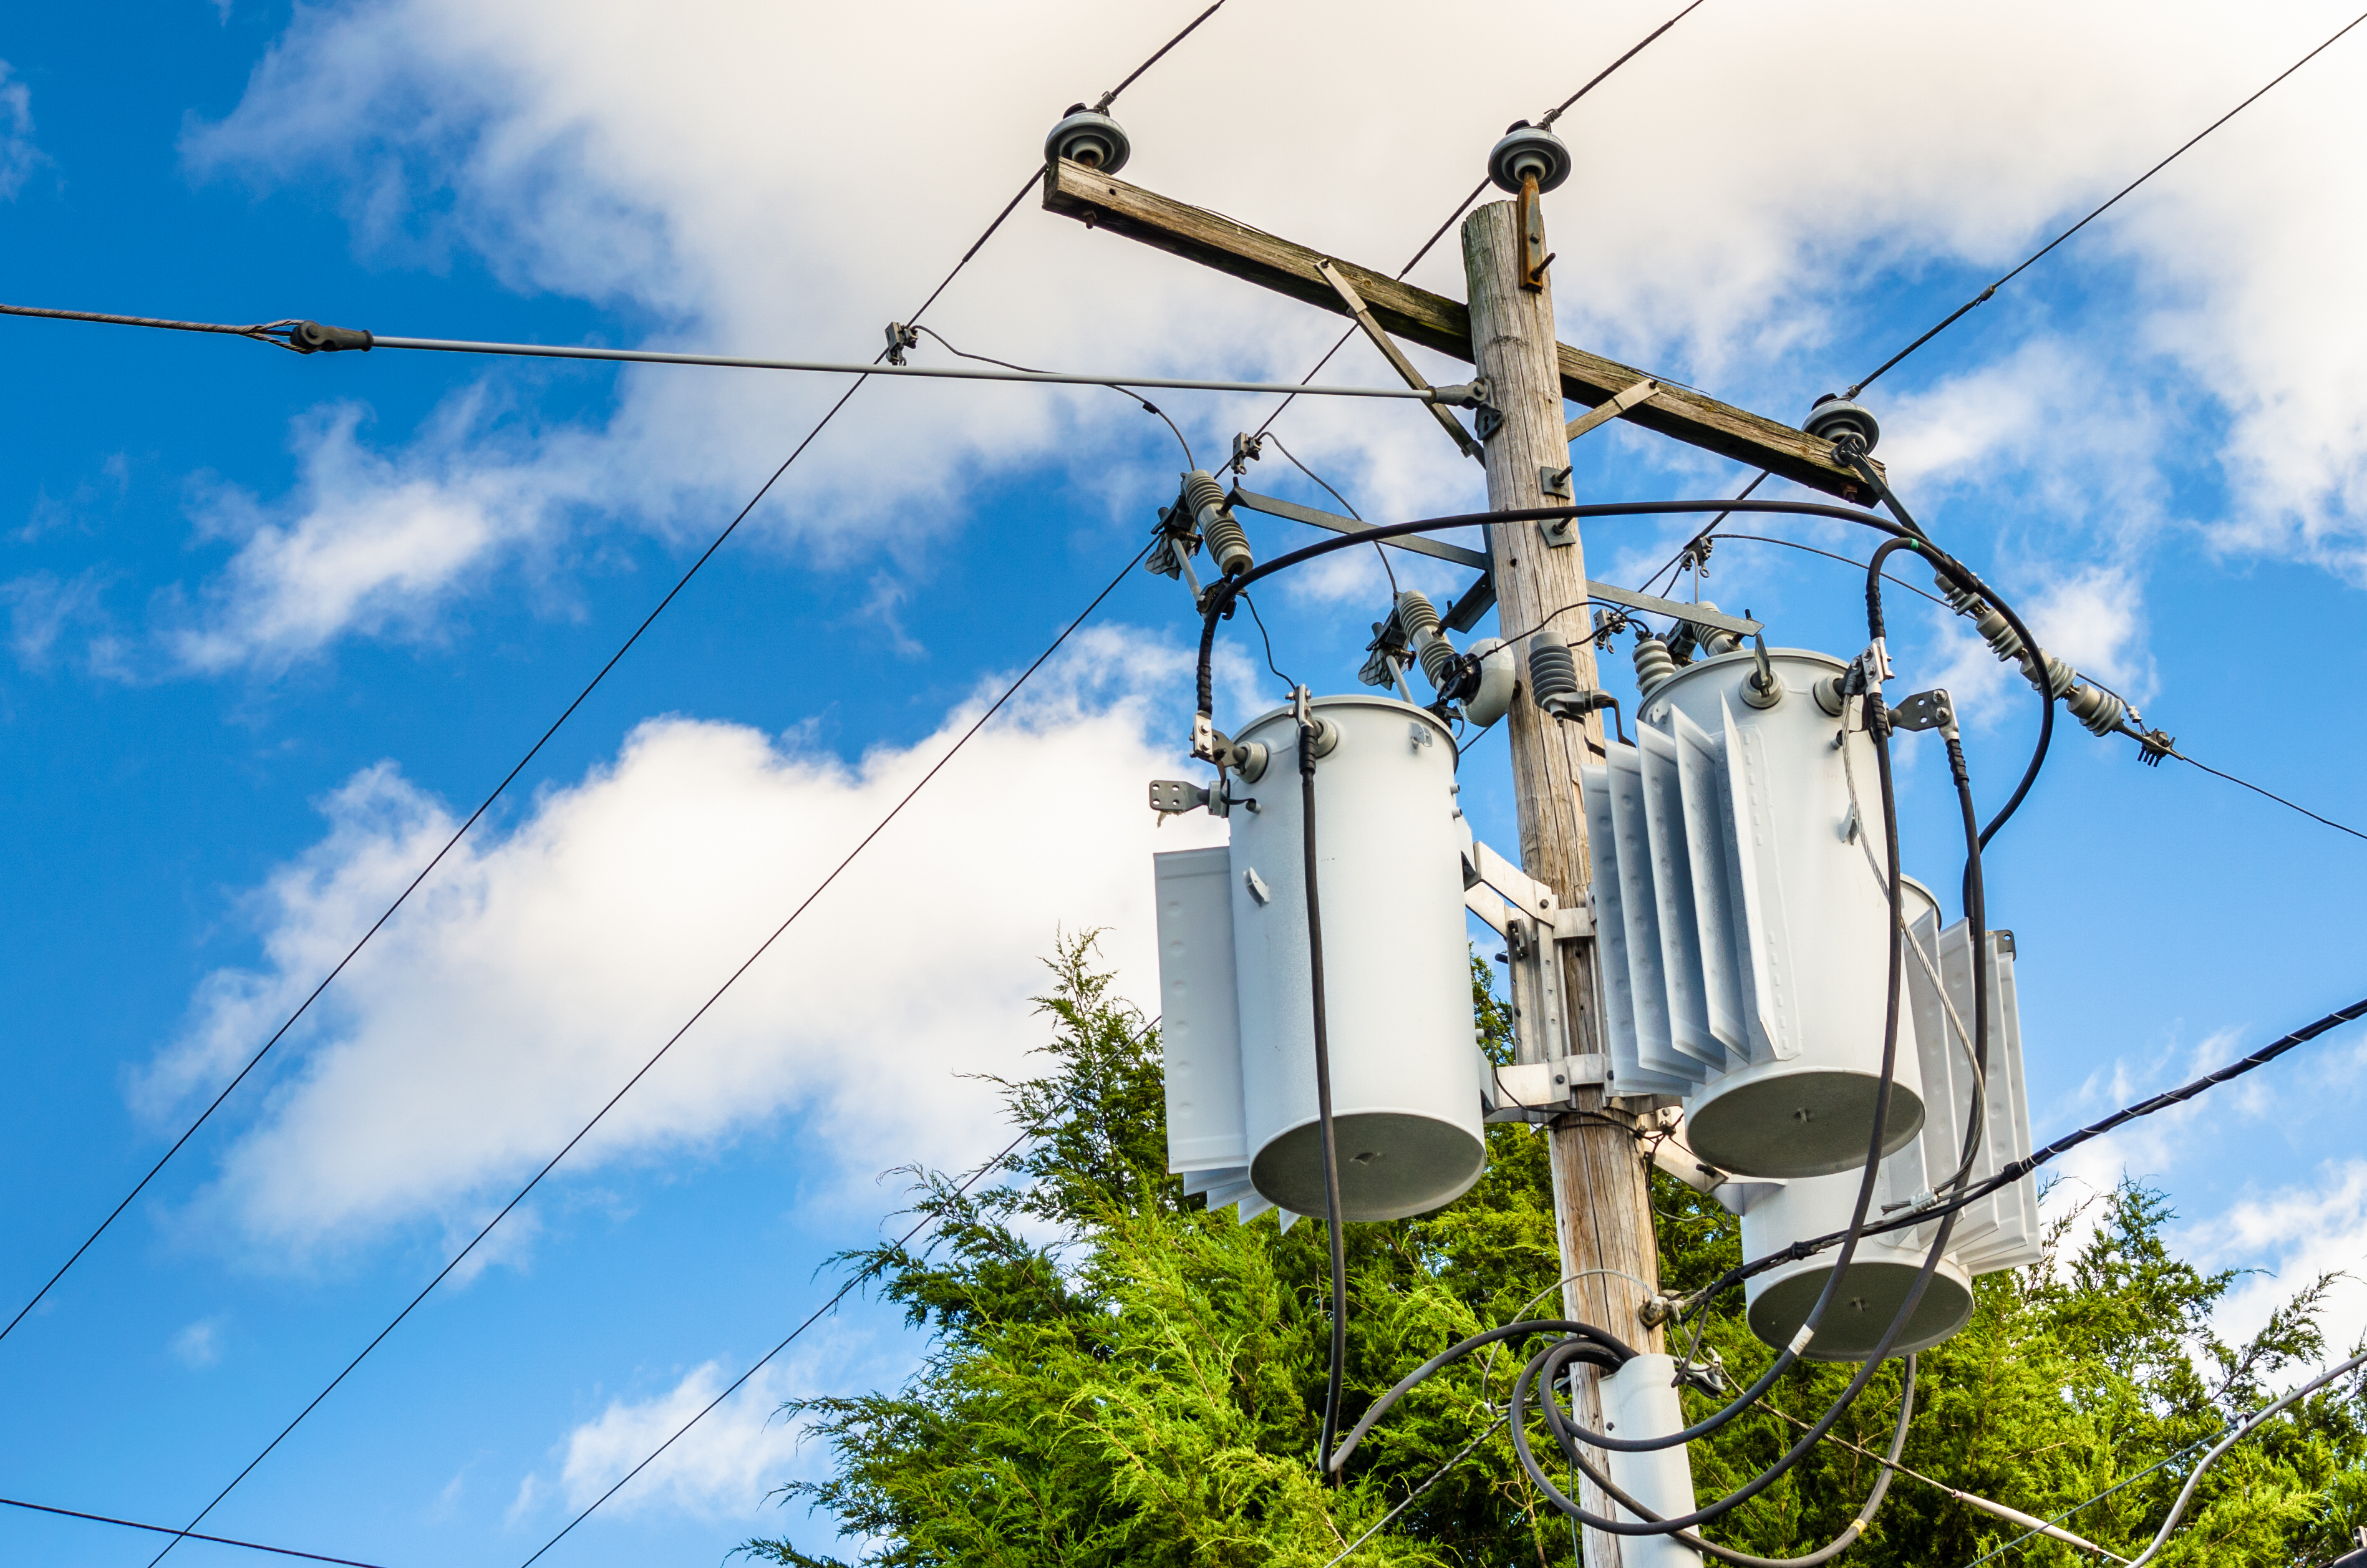 Photo of Electricity Distribution Pole with Transformers aginst Bleu Sky with Clouds